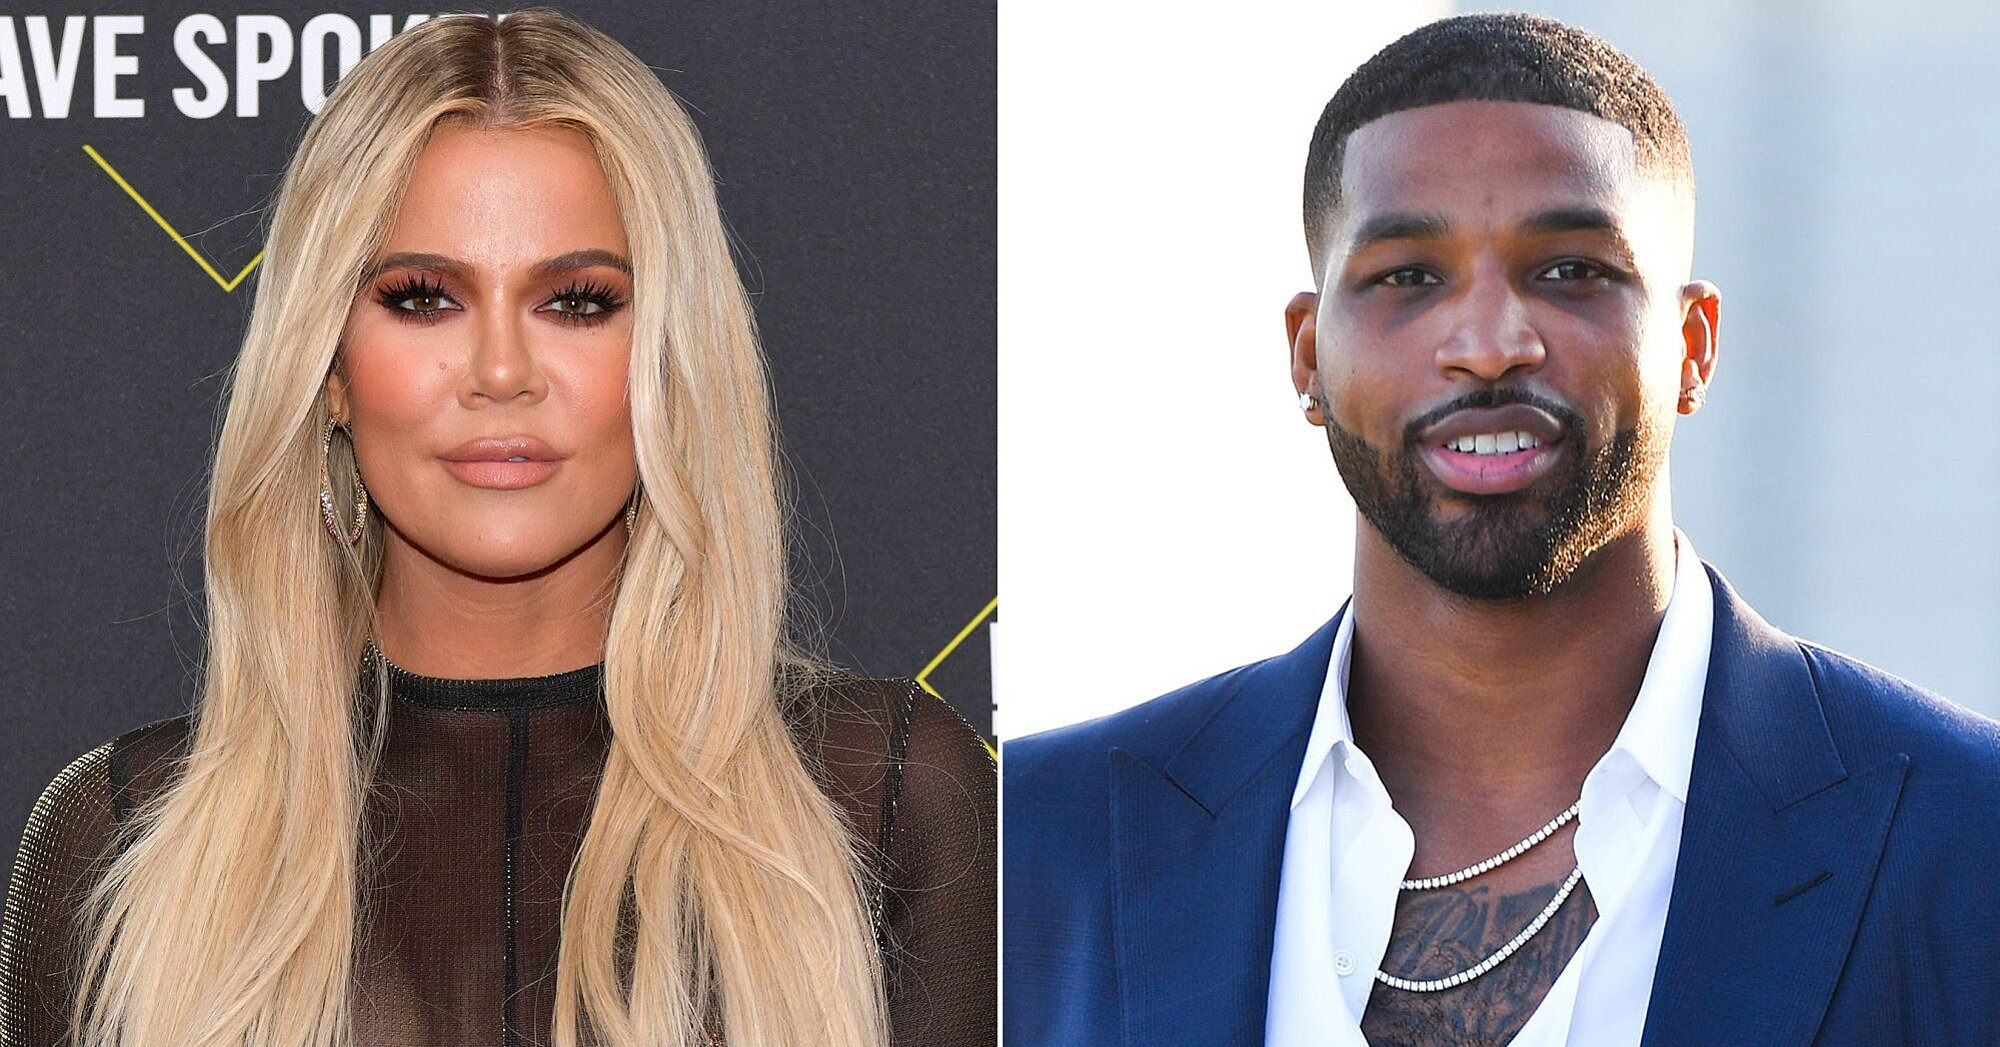 Khloé Kardashian and Tristan Thompson Send Woman Cease and Desist over Paternity Claim: Report